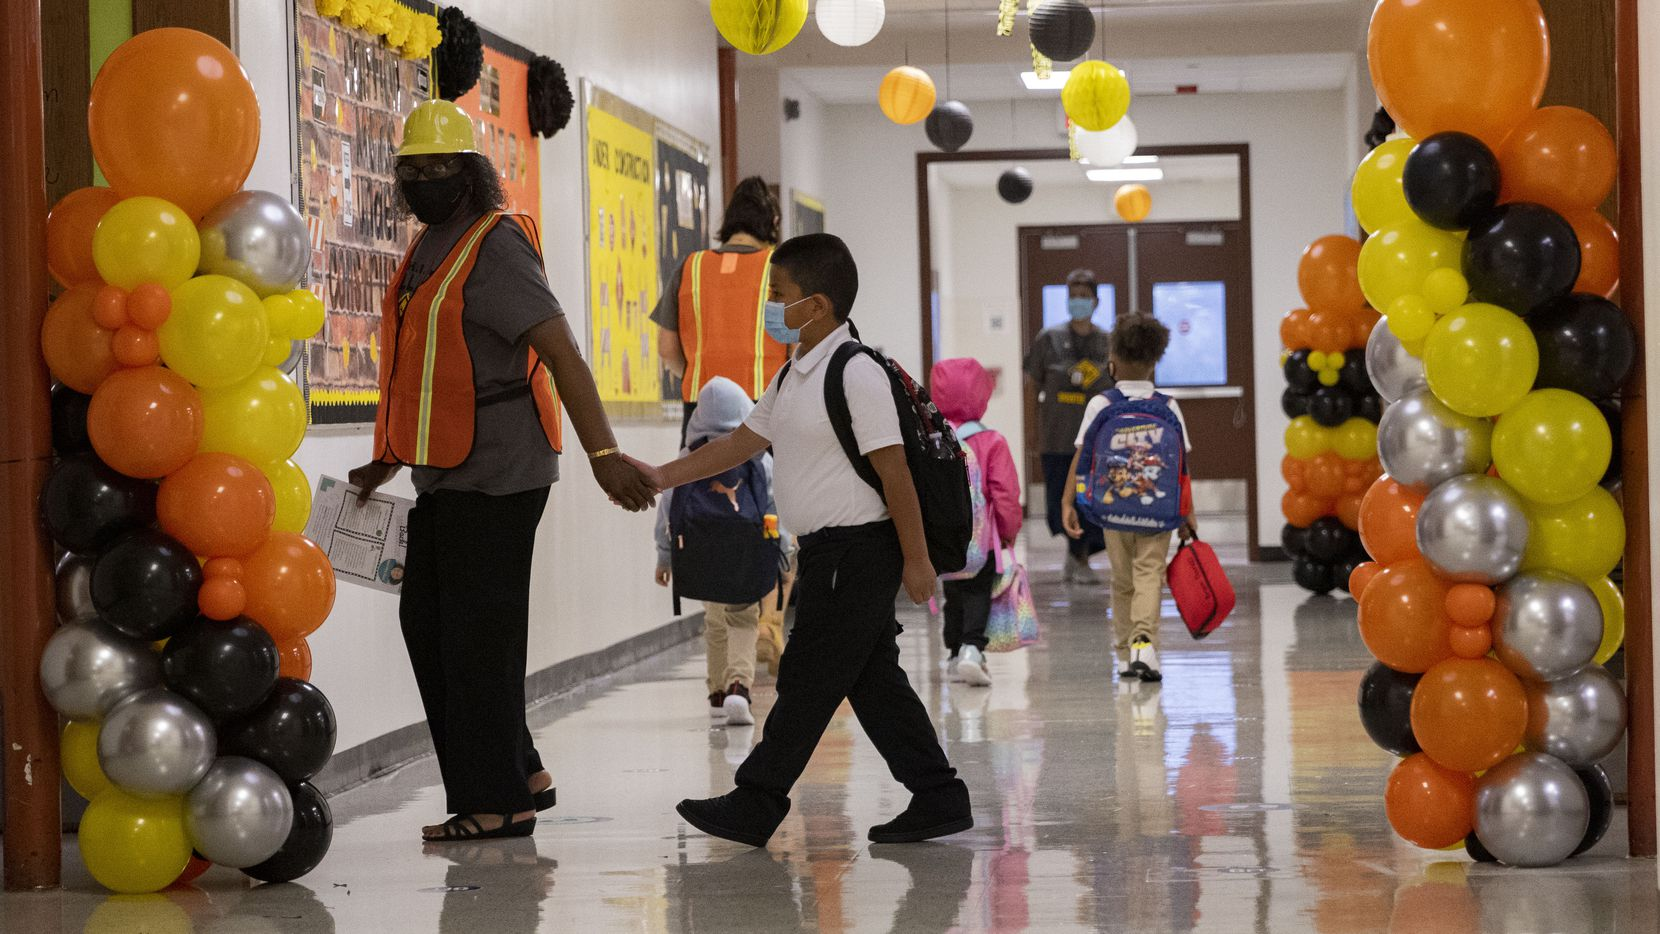 Students and teachers during the first day of school on Monday, Aug. 2, 2021, at H.I. Holland Elementary School in Dallas. Many parents are concerned statewide about the inability for individual districts to mandate masks.